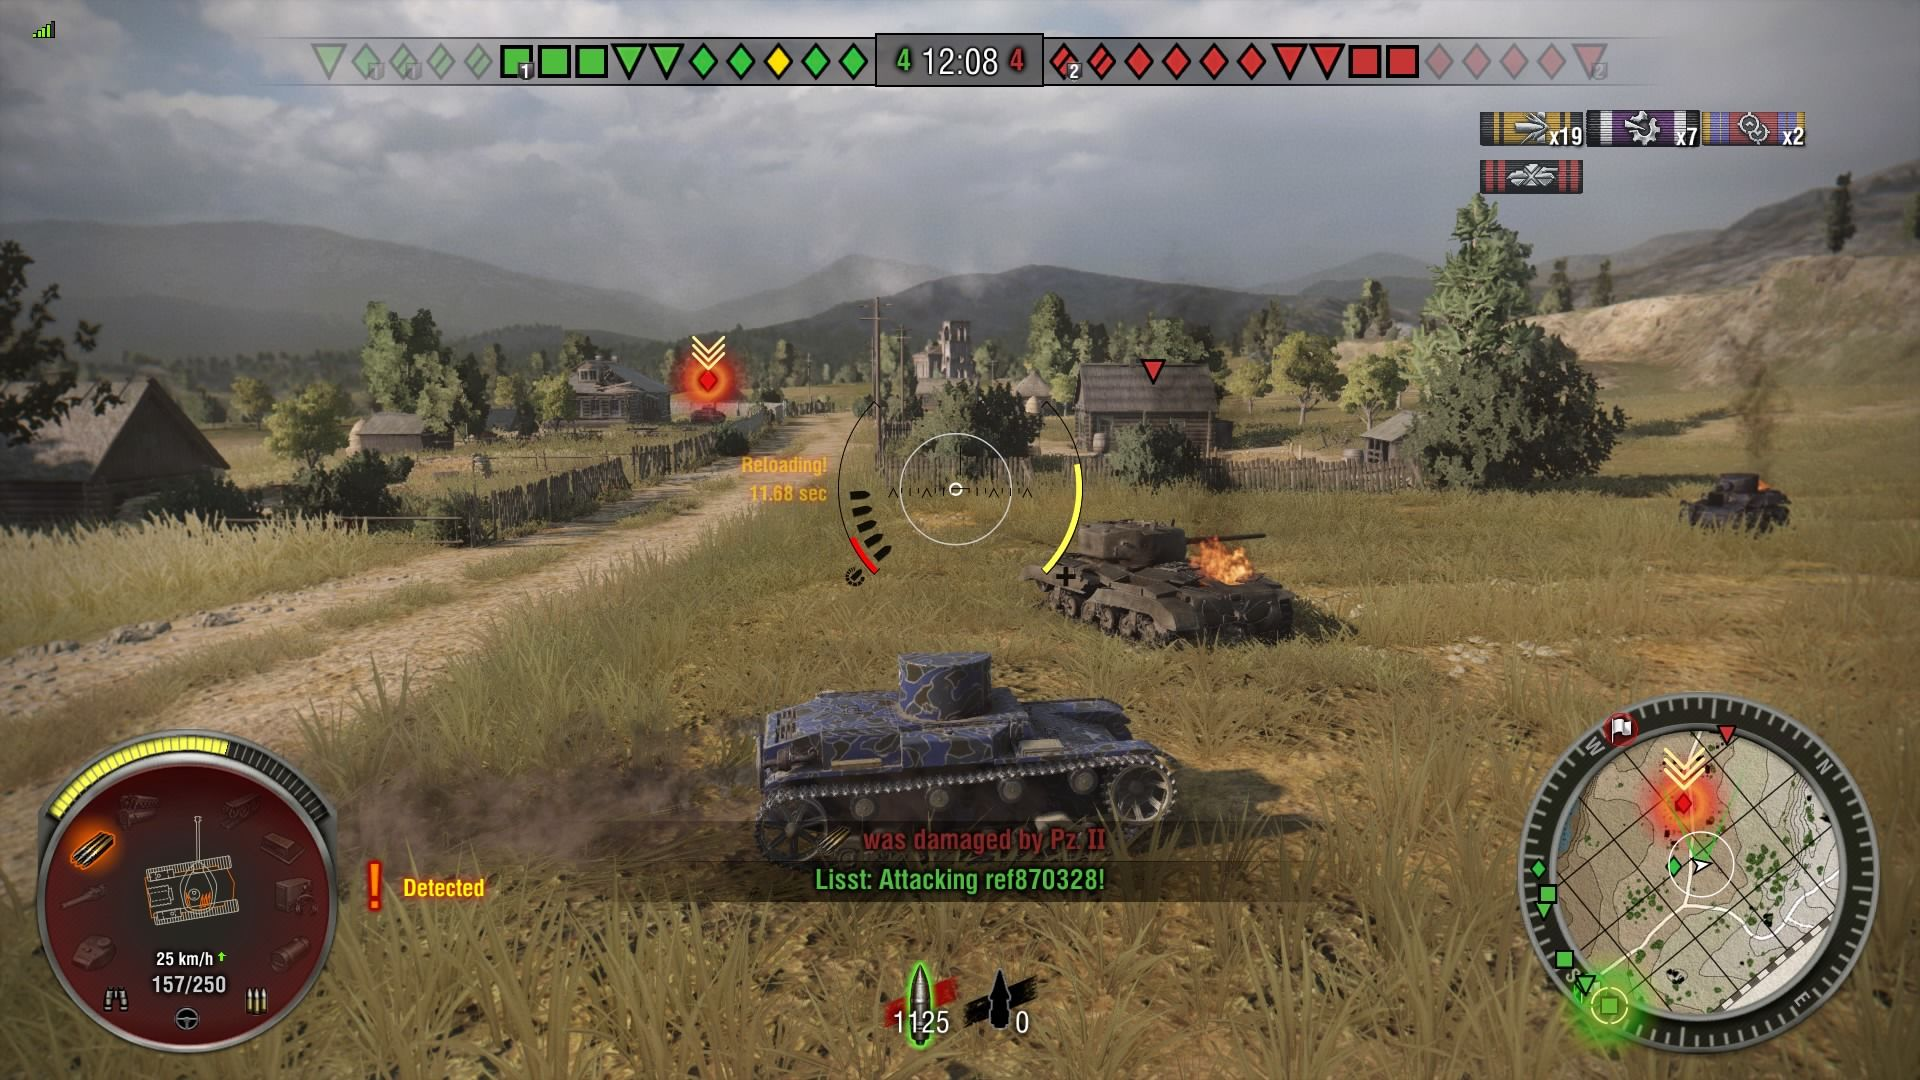 825472-world-of-tanks-playstation-4-screenshot-detected-by-the-enemy.jpg